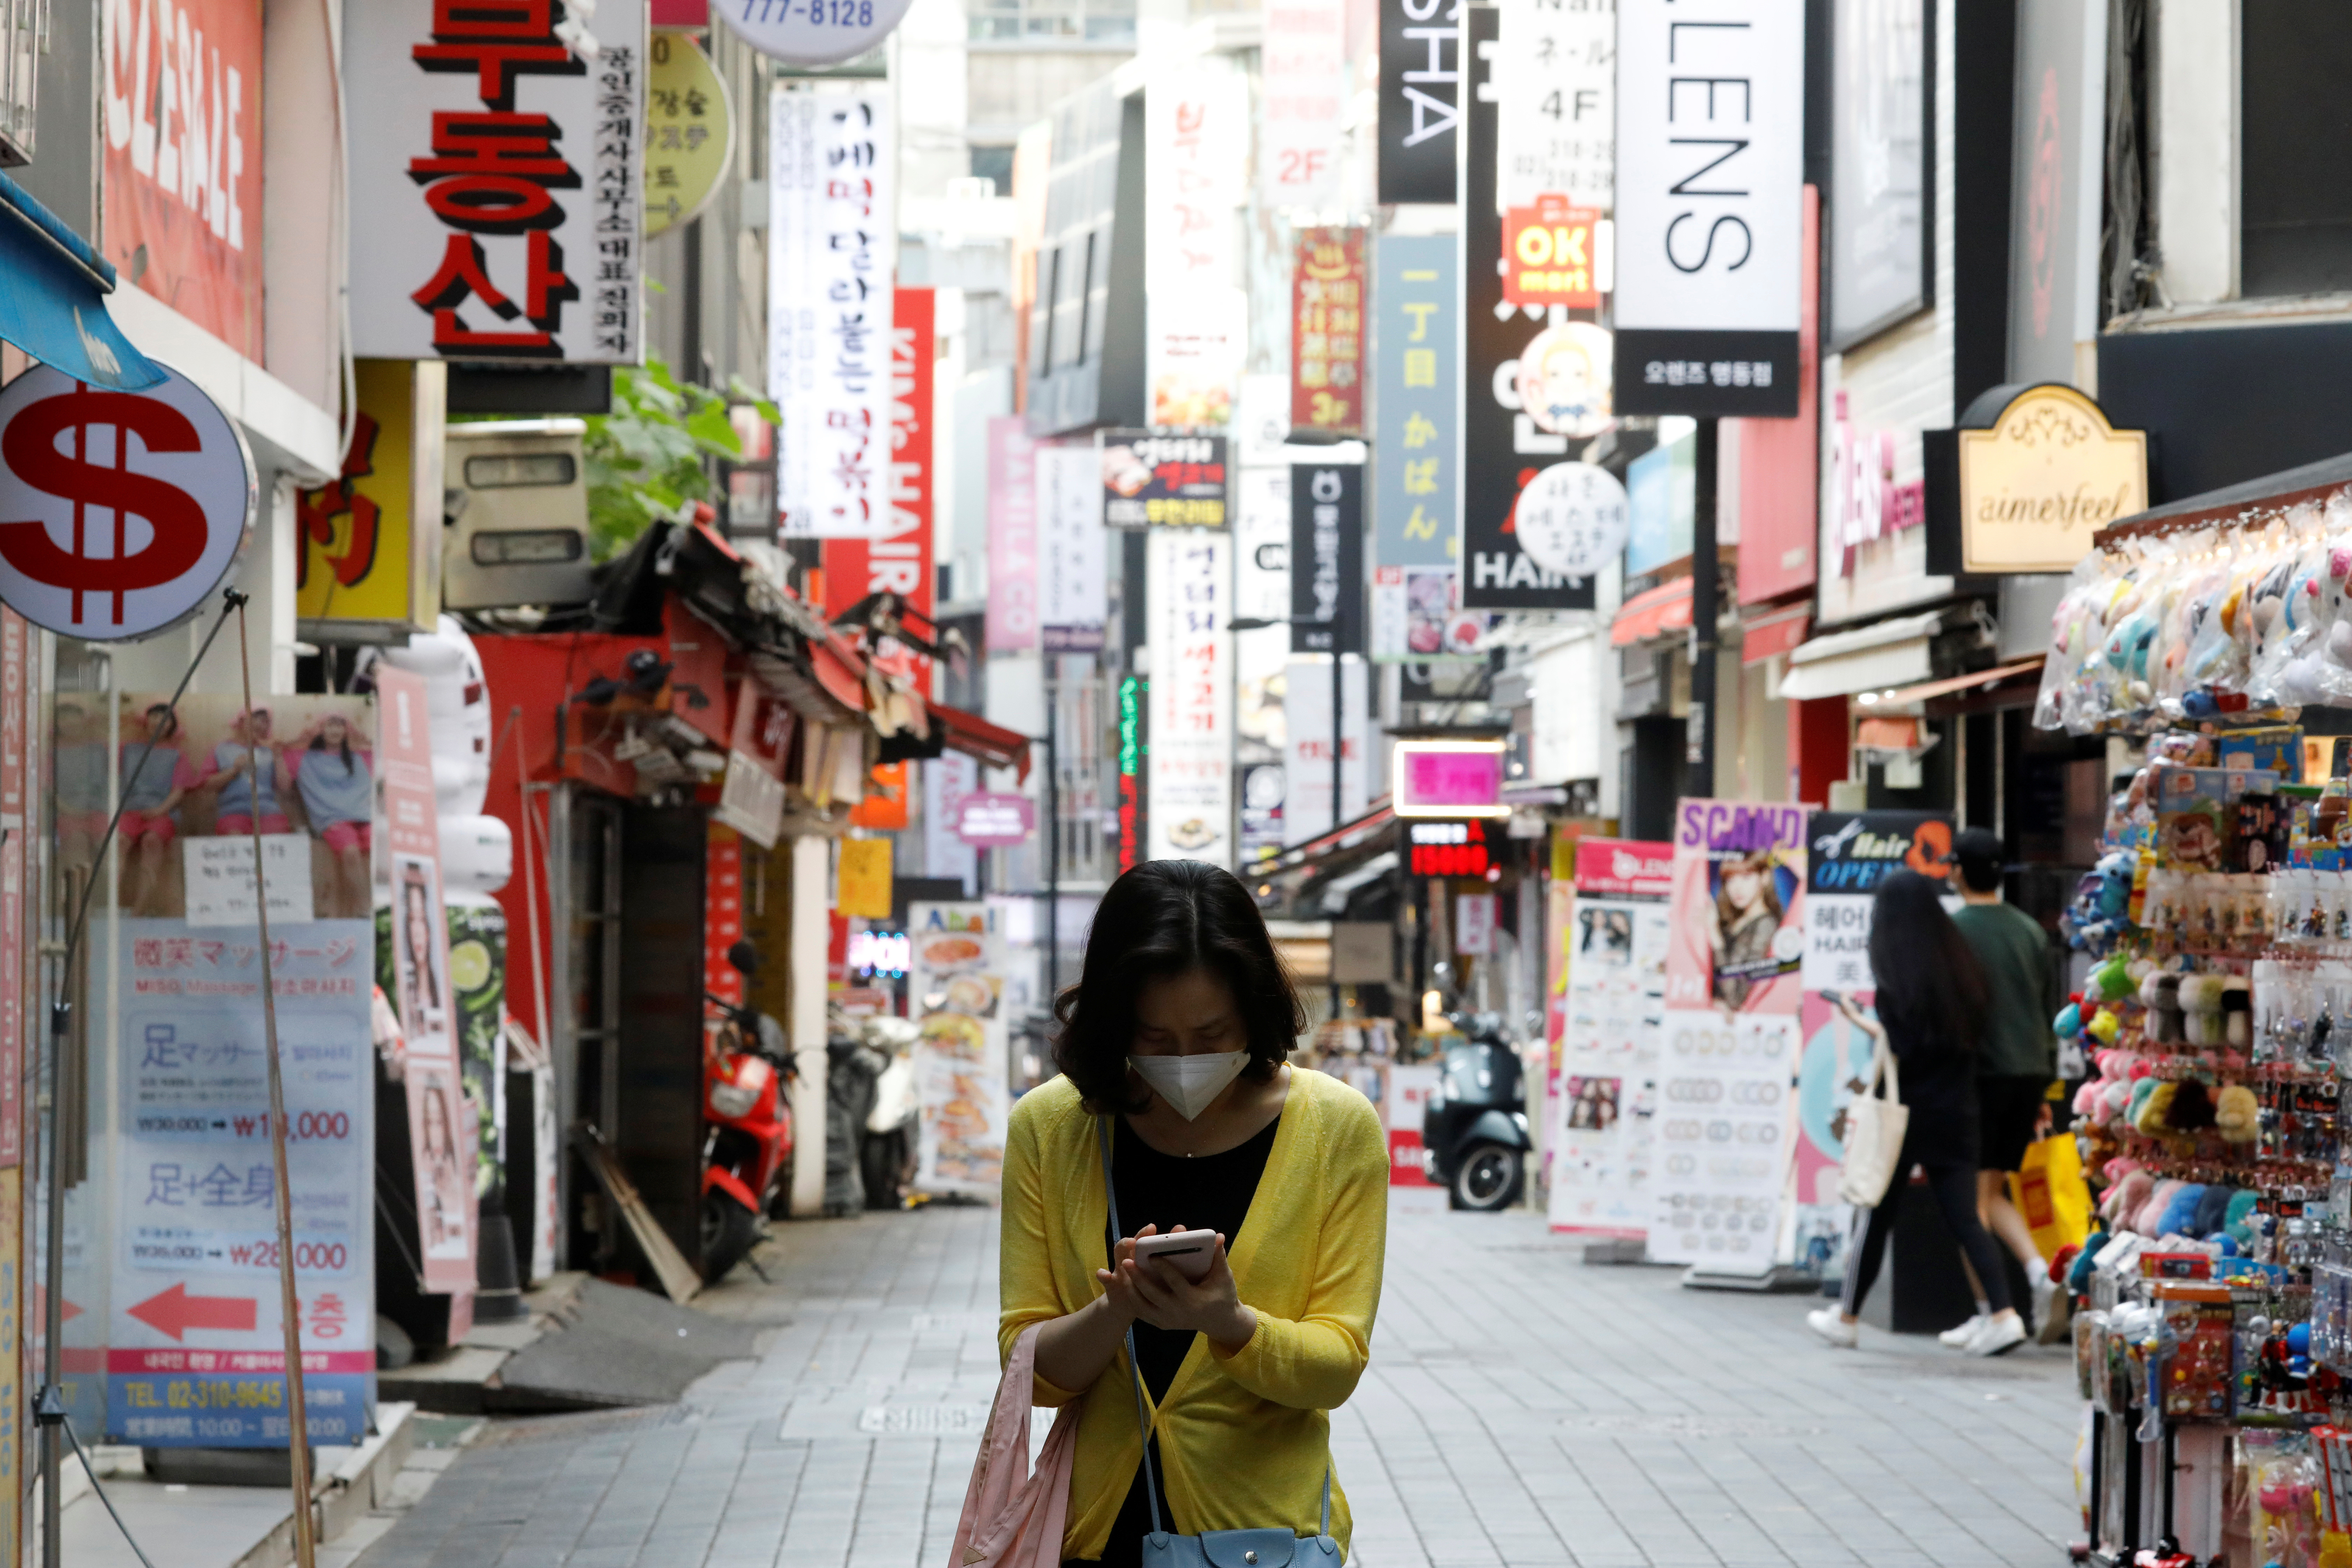 A woman wearing a mask looks at her mobile phone amid social distancing measures to avoid the spread of the coronavirus disease (COVID-19), in Myeongdong shopping district in Seoul, South Korea, May 28, 2020.   REUTERS/Kim Hong-Ji - RC2OXG90N3B6